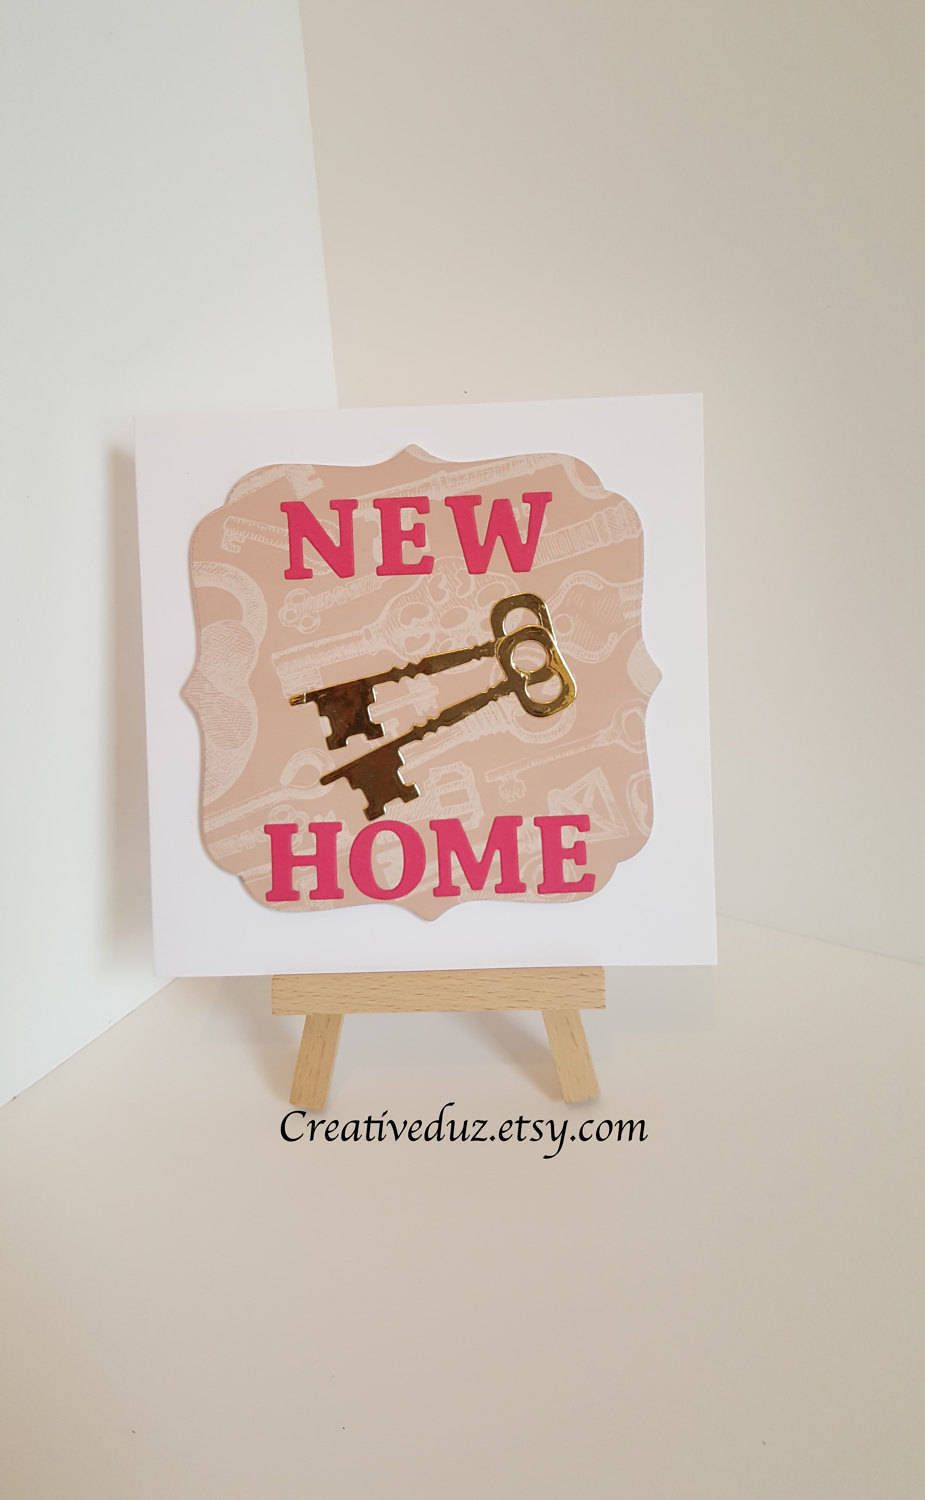 New Home Cards House Warming Cards New Home Couple Cards New Home